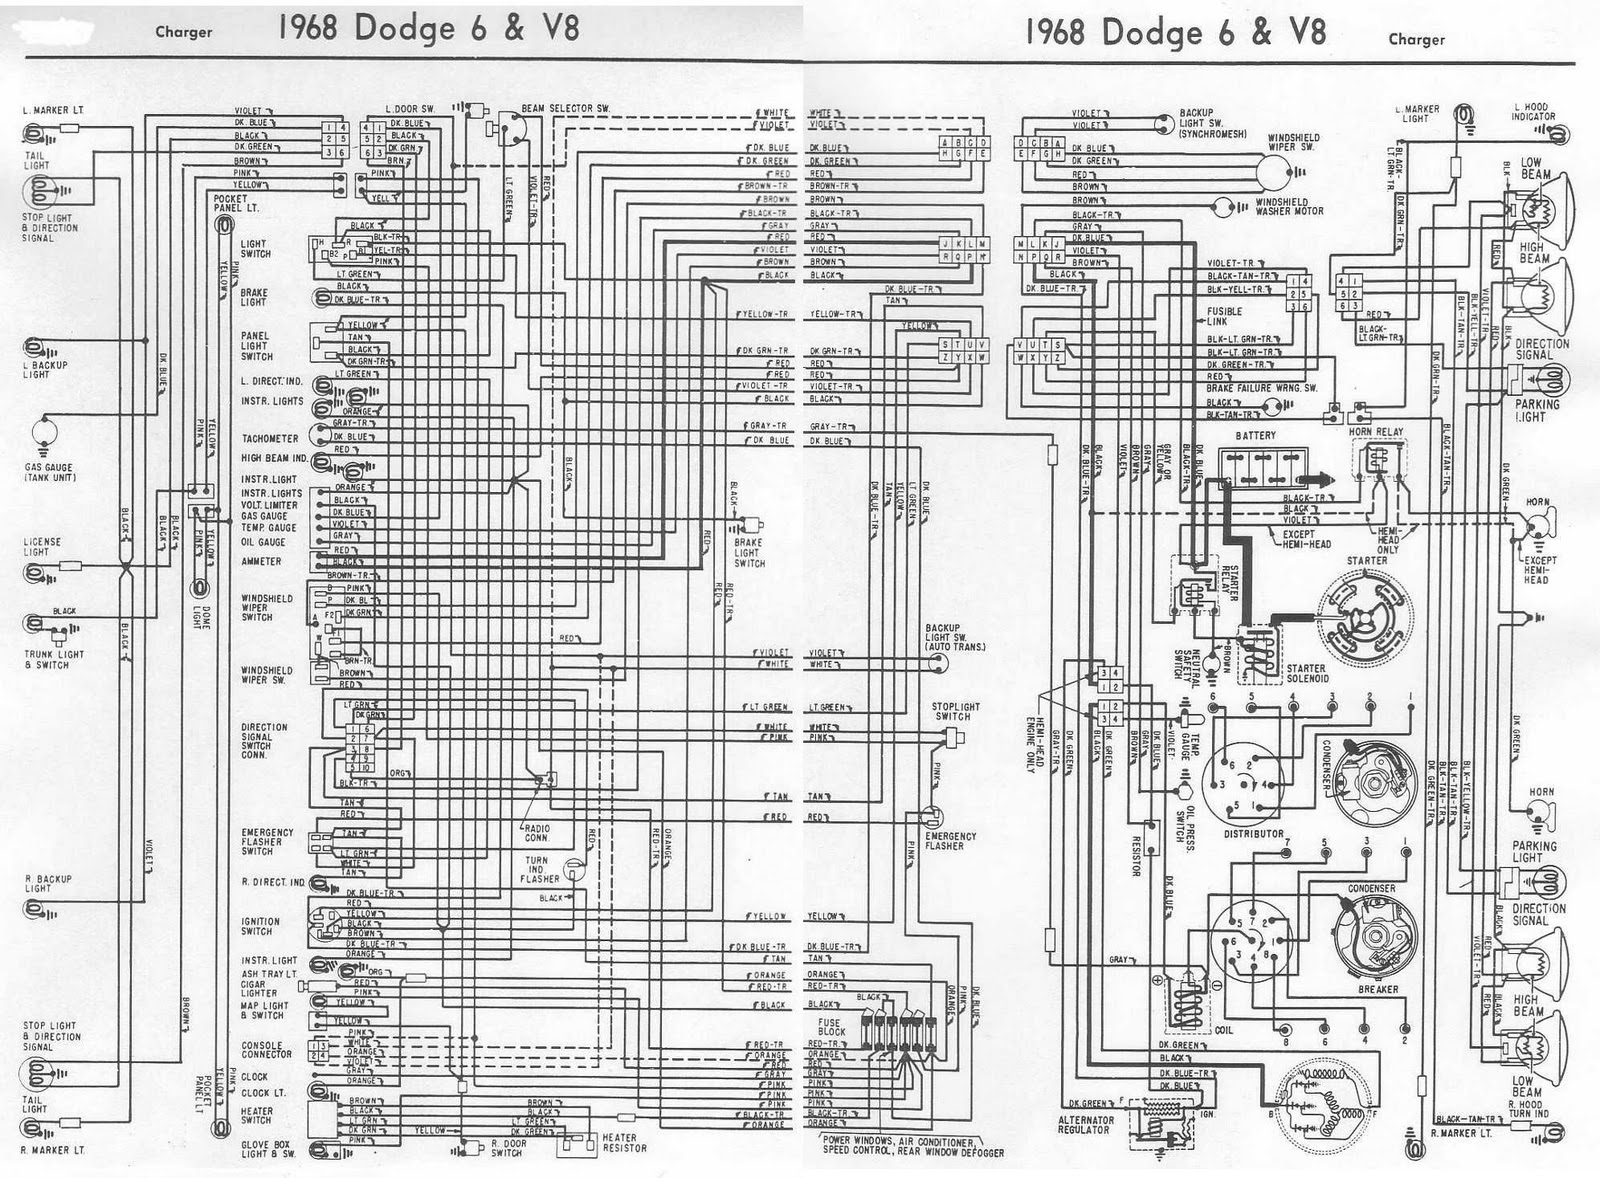 dodge charger 1968 6 and v8 complete electrical wiring diagram all about wiring diagrams 1967 chevy impala wiring diagram dodge ram alternator wiring  [ 1600 x 1178 Pixel ]